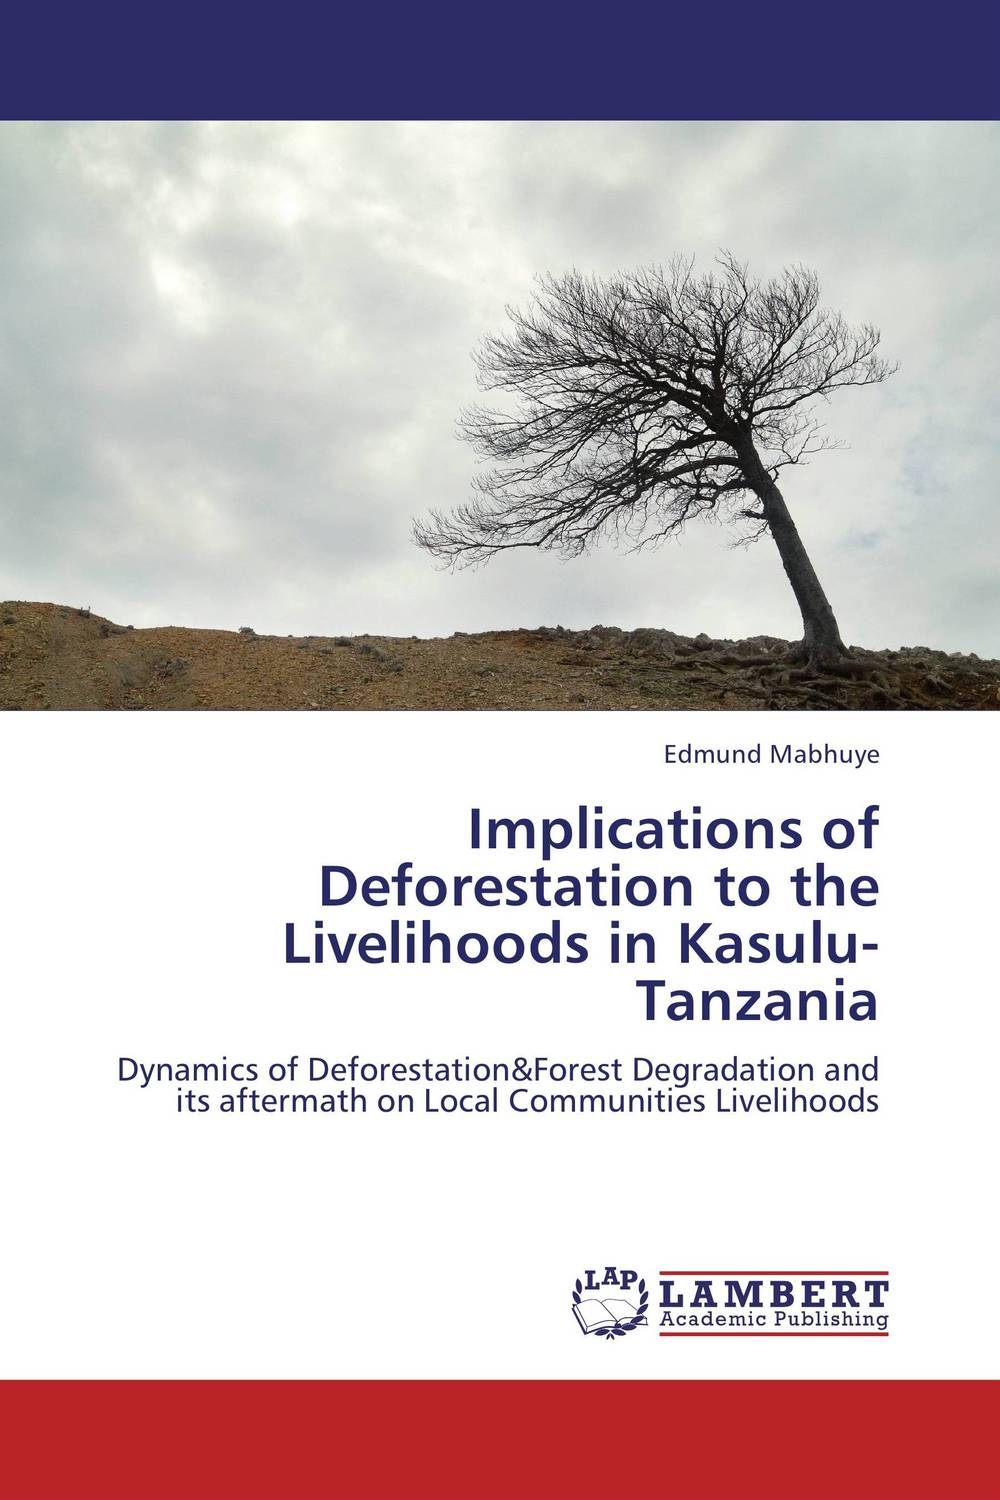 Implications of Deforestation to the Livelihoods in Kasulu-Tanzania conflicts in forest resources usage and management